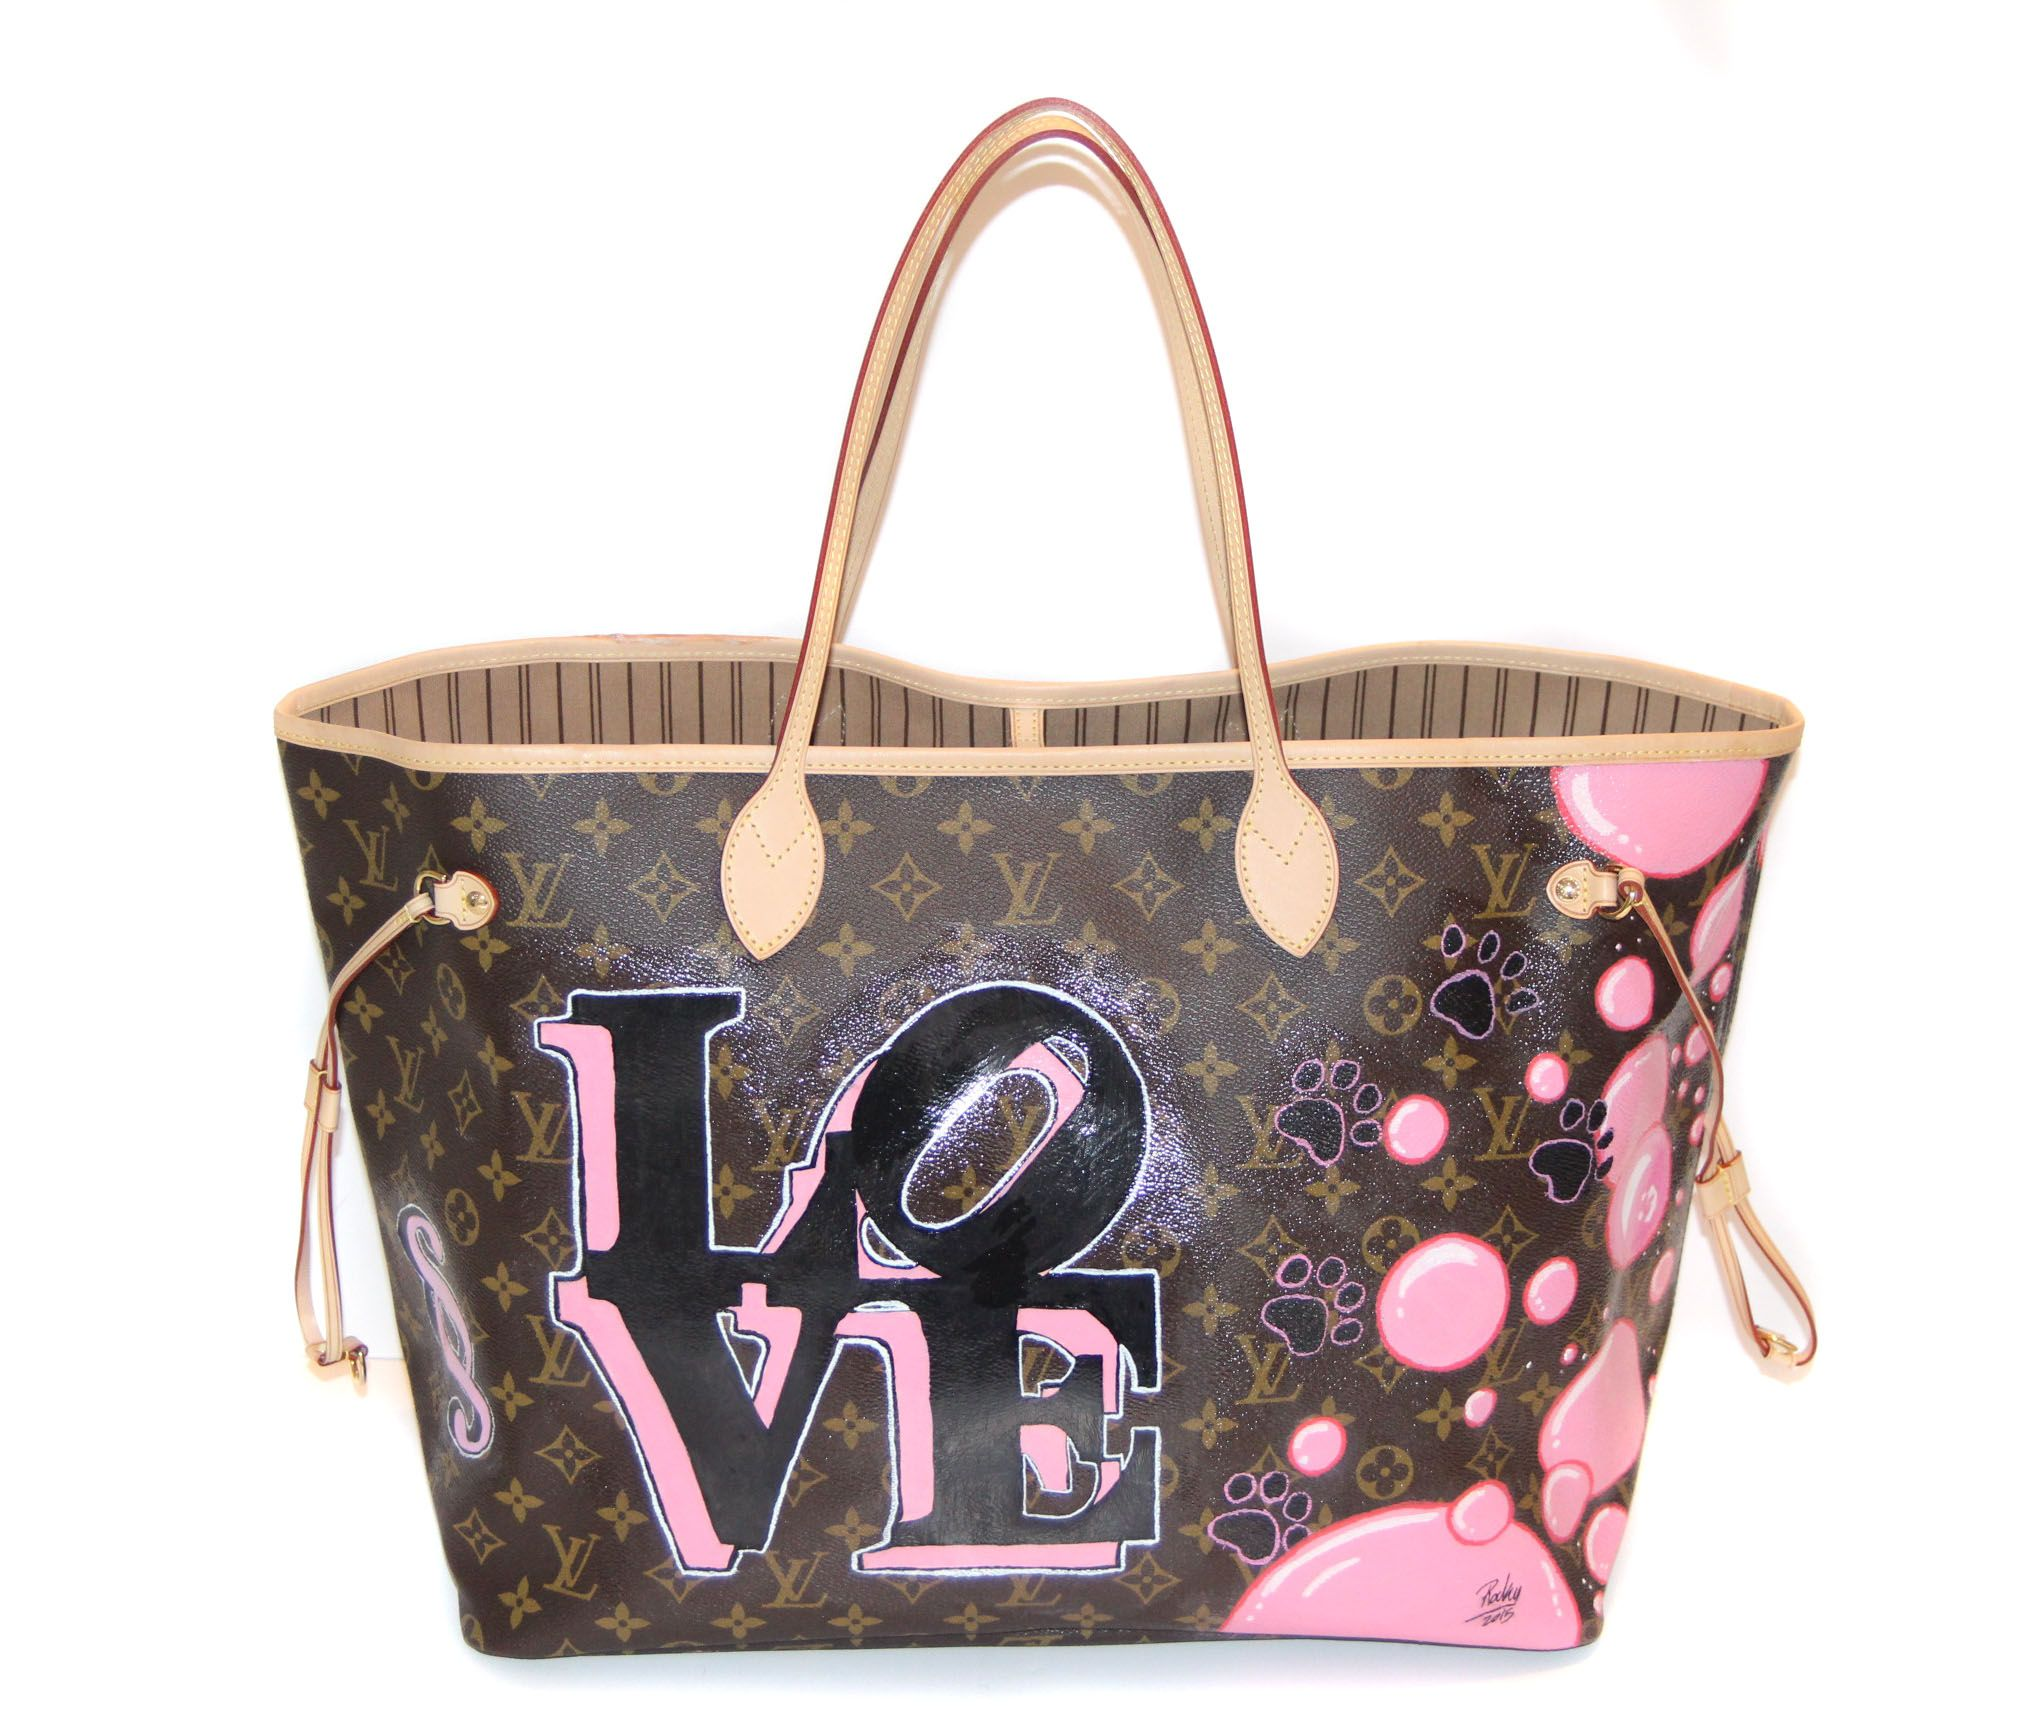 HAND PAINTED LOUIS VUITTON NEVERFULL BAG BY ROCKY MAZZILLI FOR YEAR ZERO  LONDON 9b95a39d8899